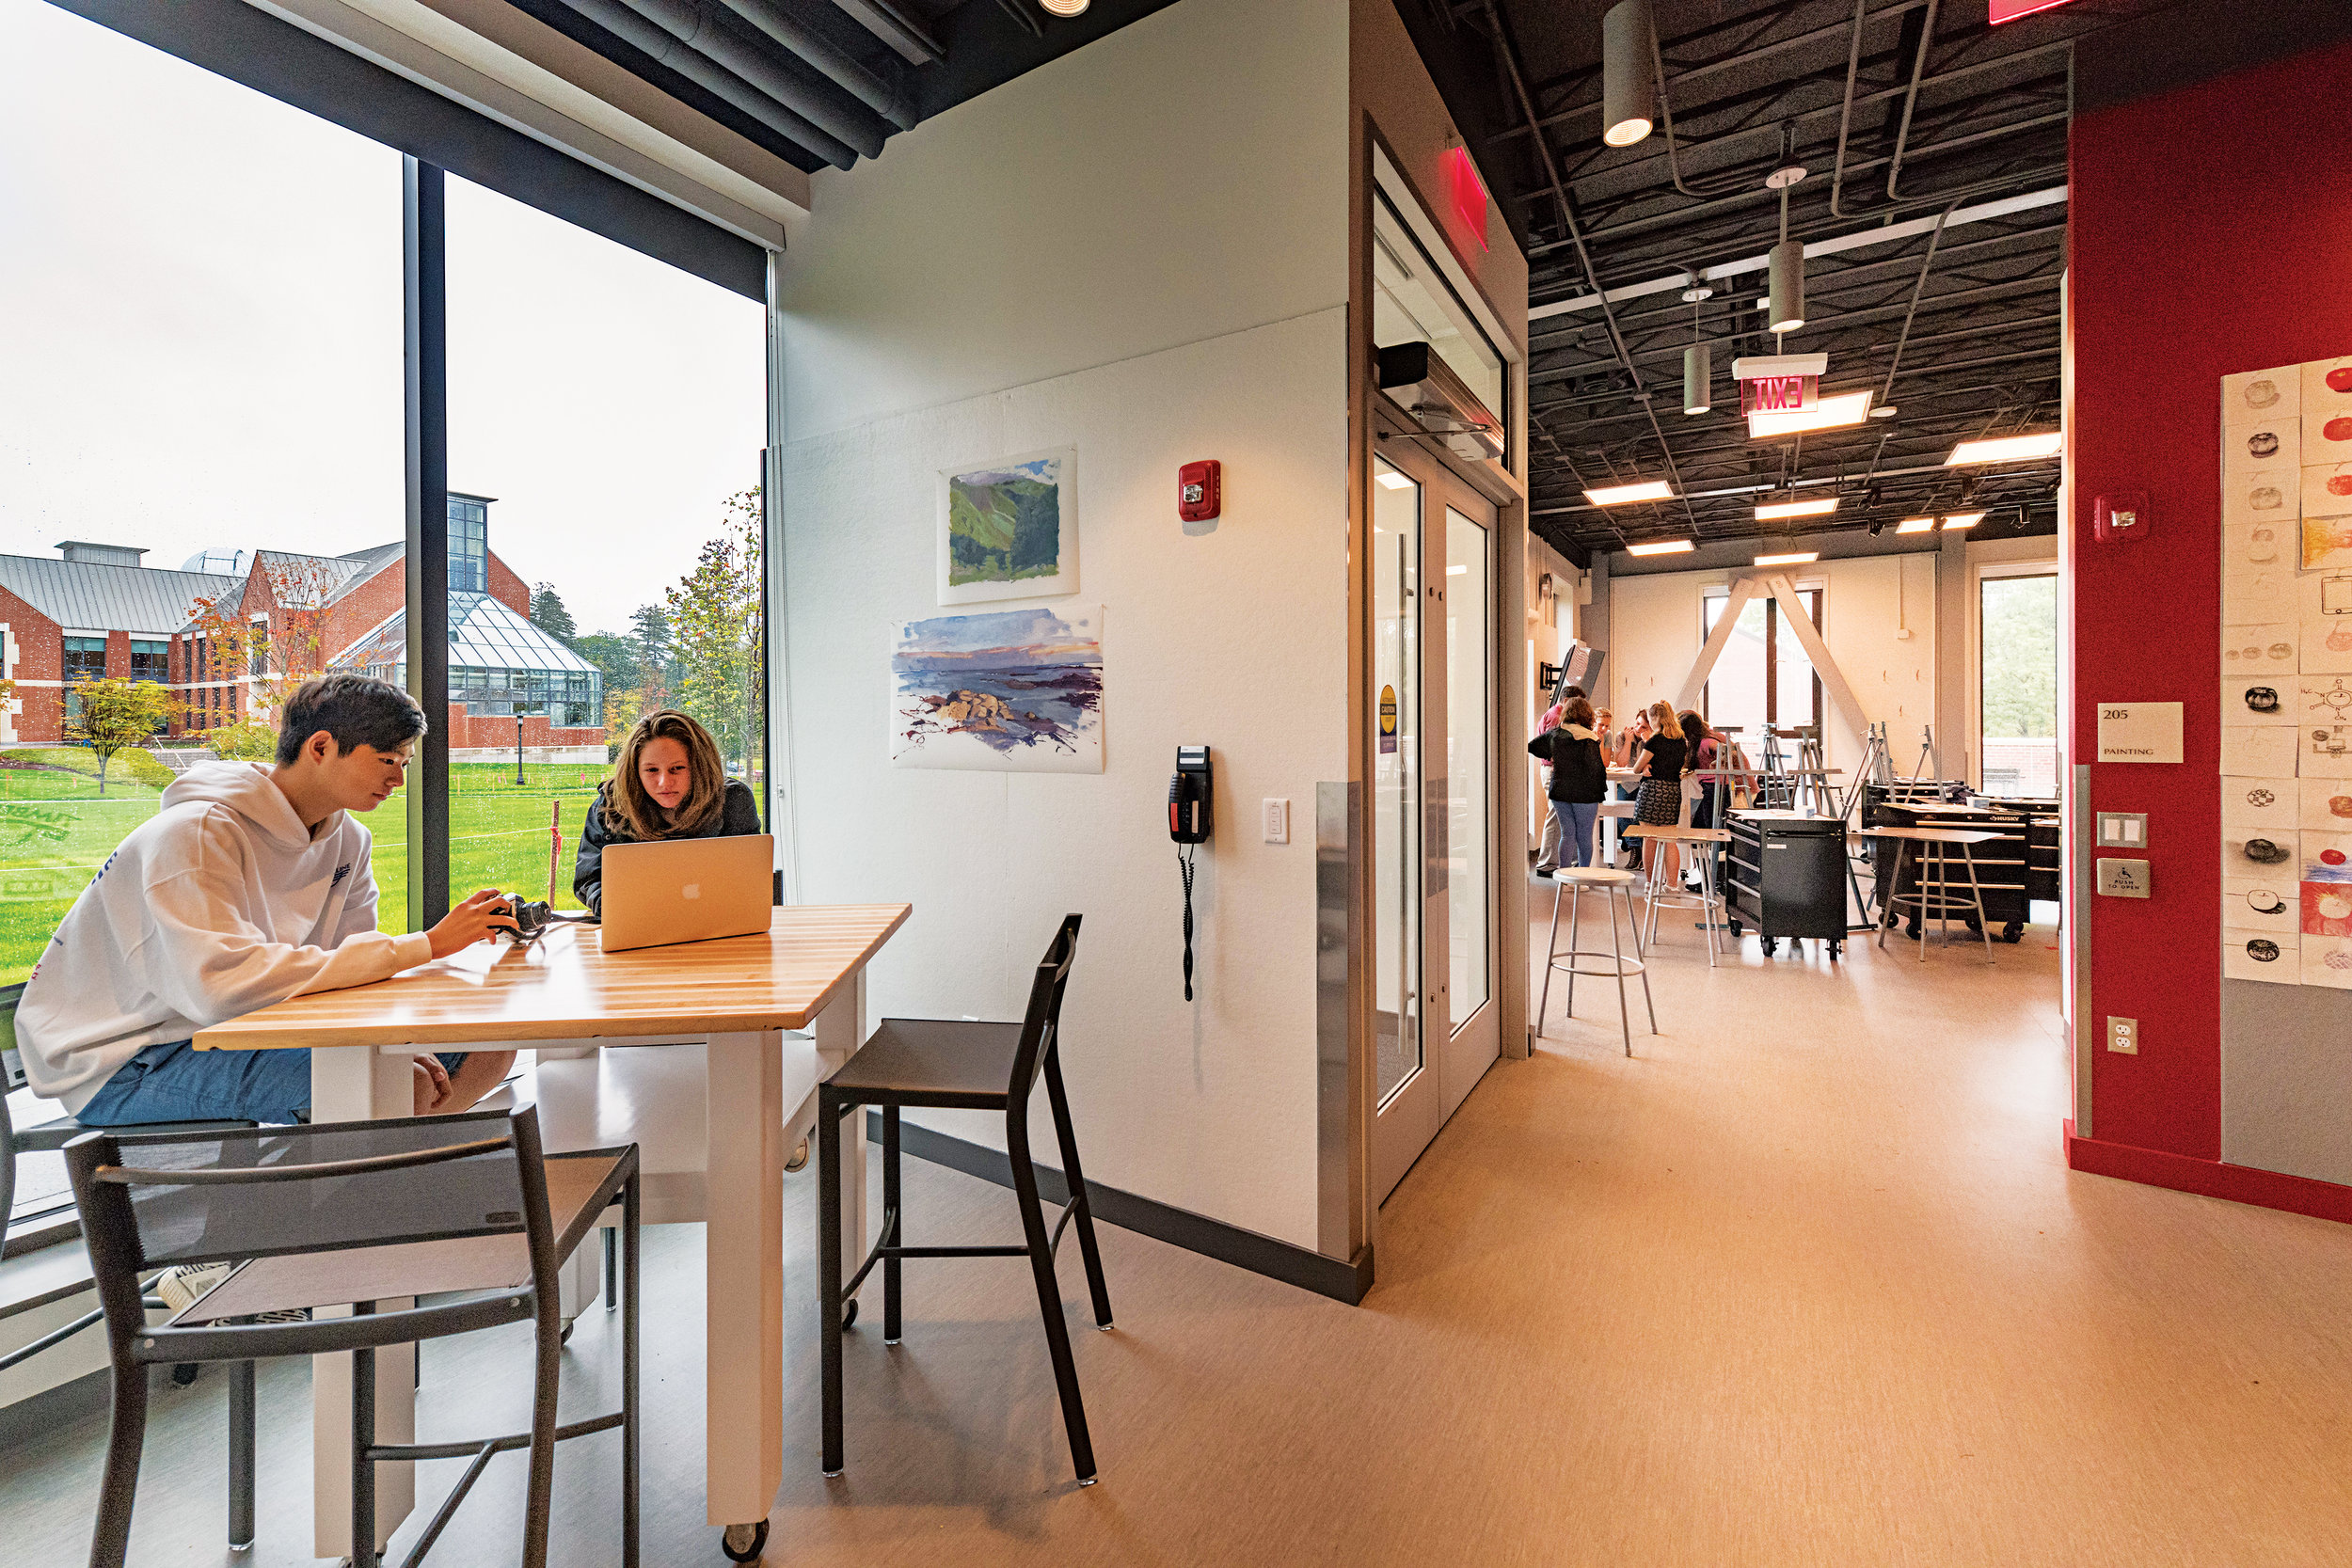 Students work in a collaborative space within the Abbé Studio.